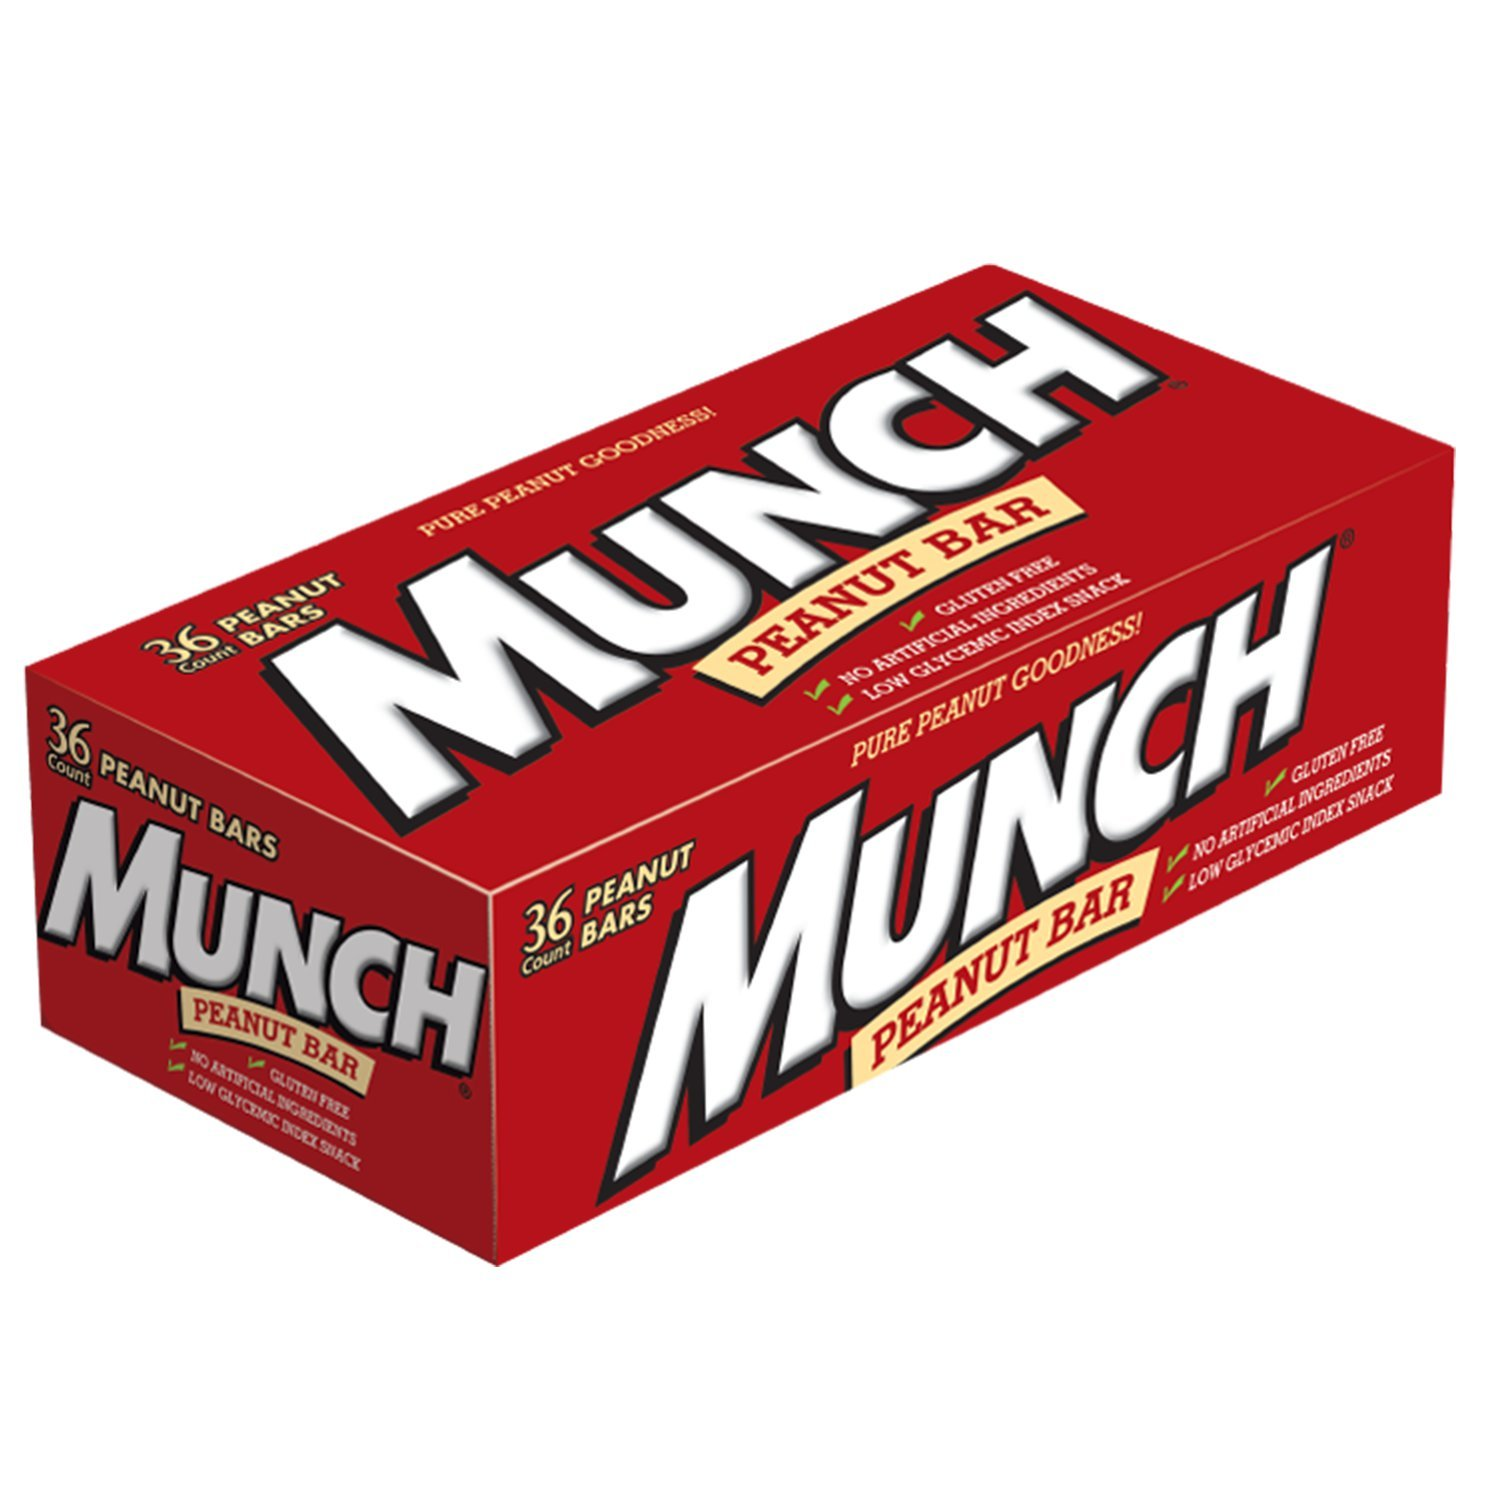 MUNCH Peanut Bar Singles Size 1.42-Ounce Bar 36-Count Box by Munch